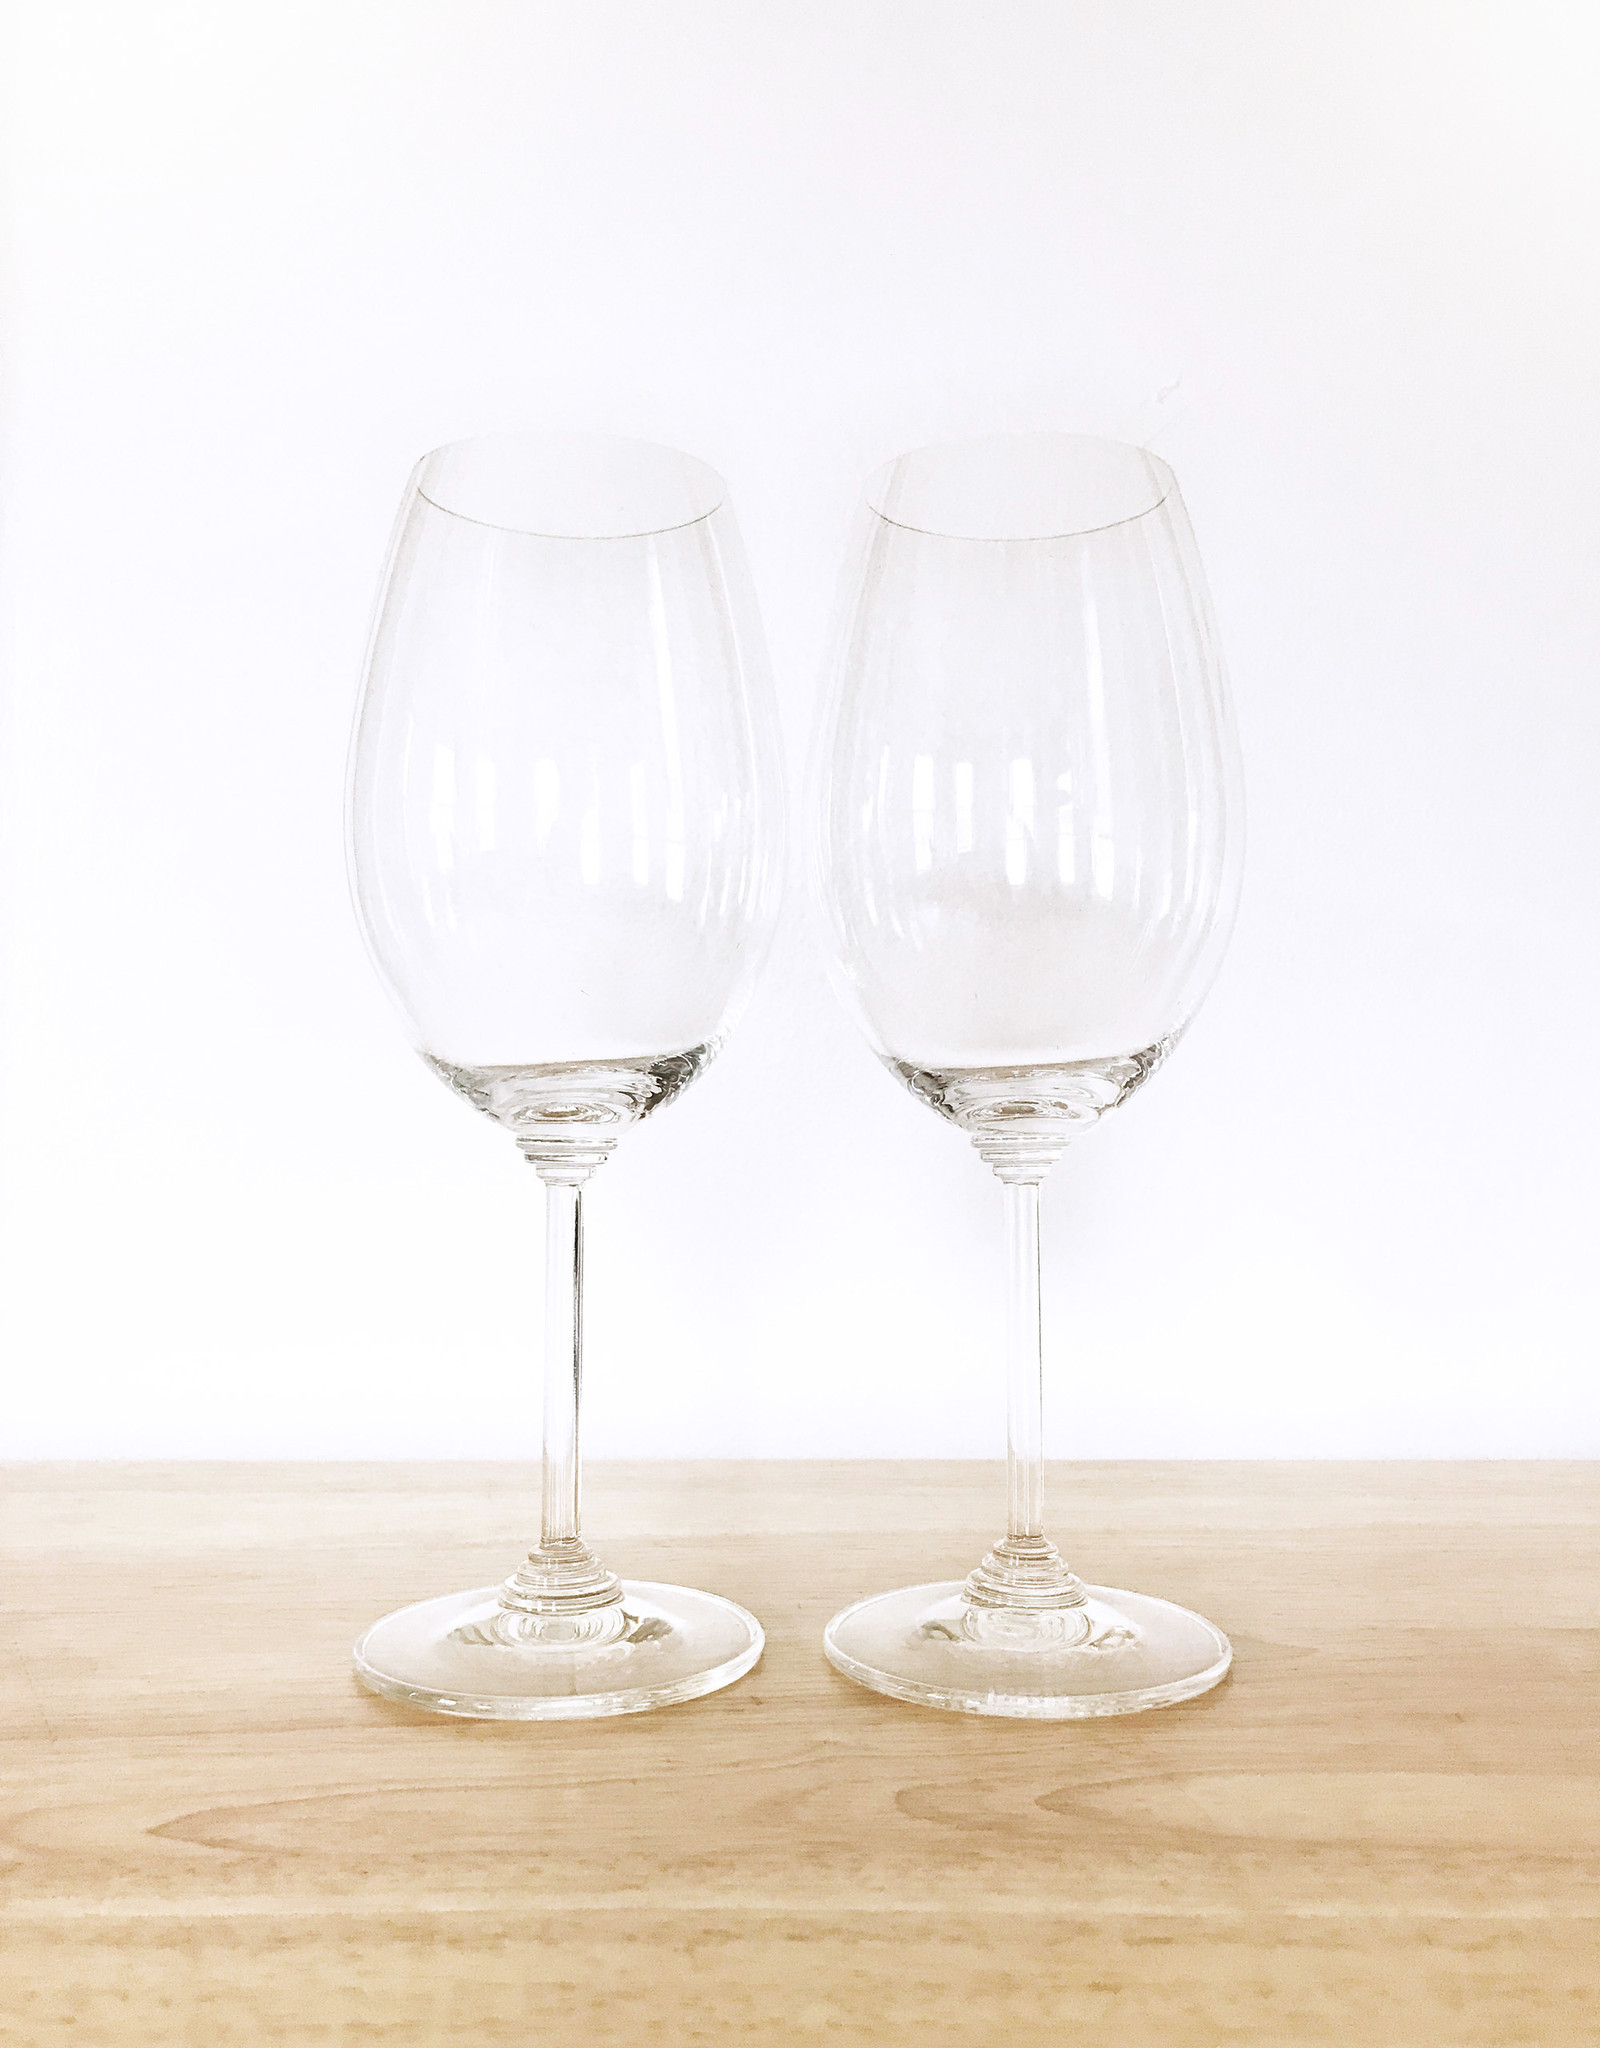 Riedel Riedel Syrah/Shiraz Wine Glasses, Set of 2